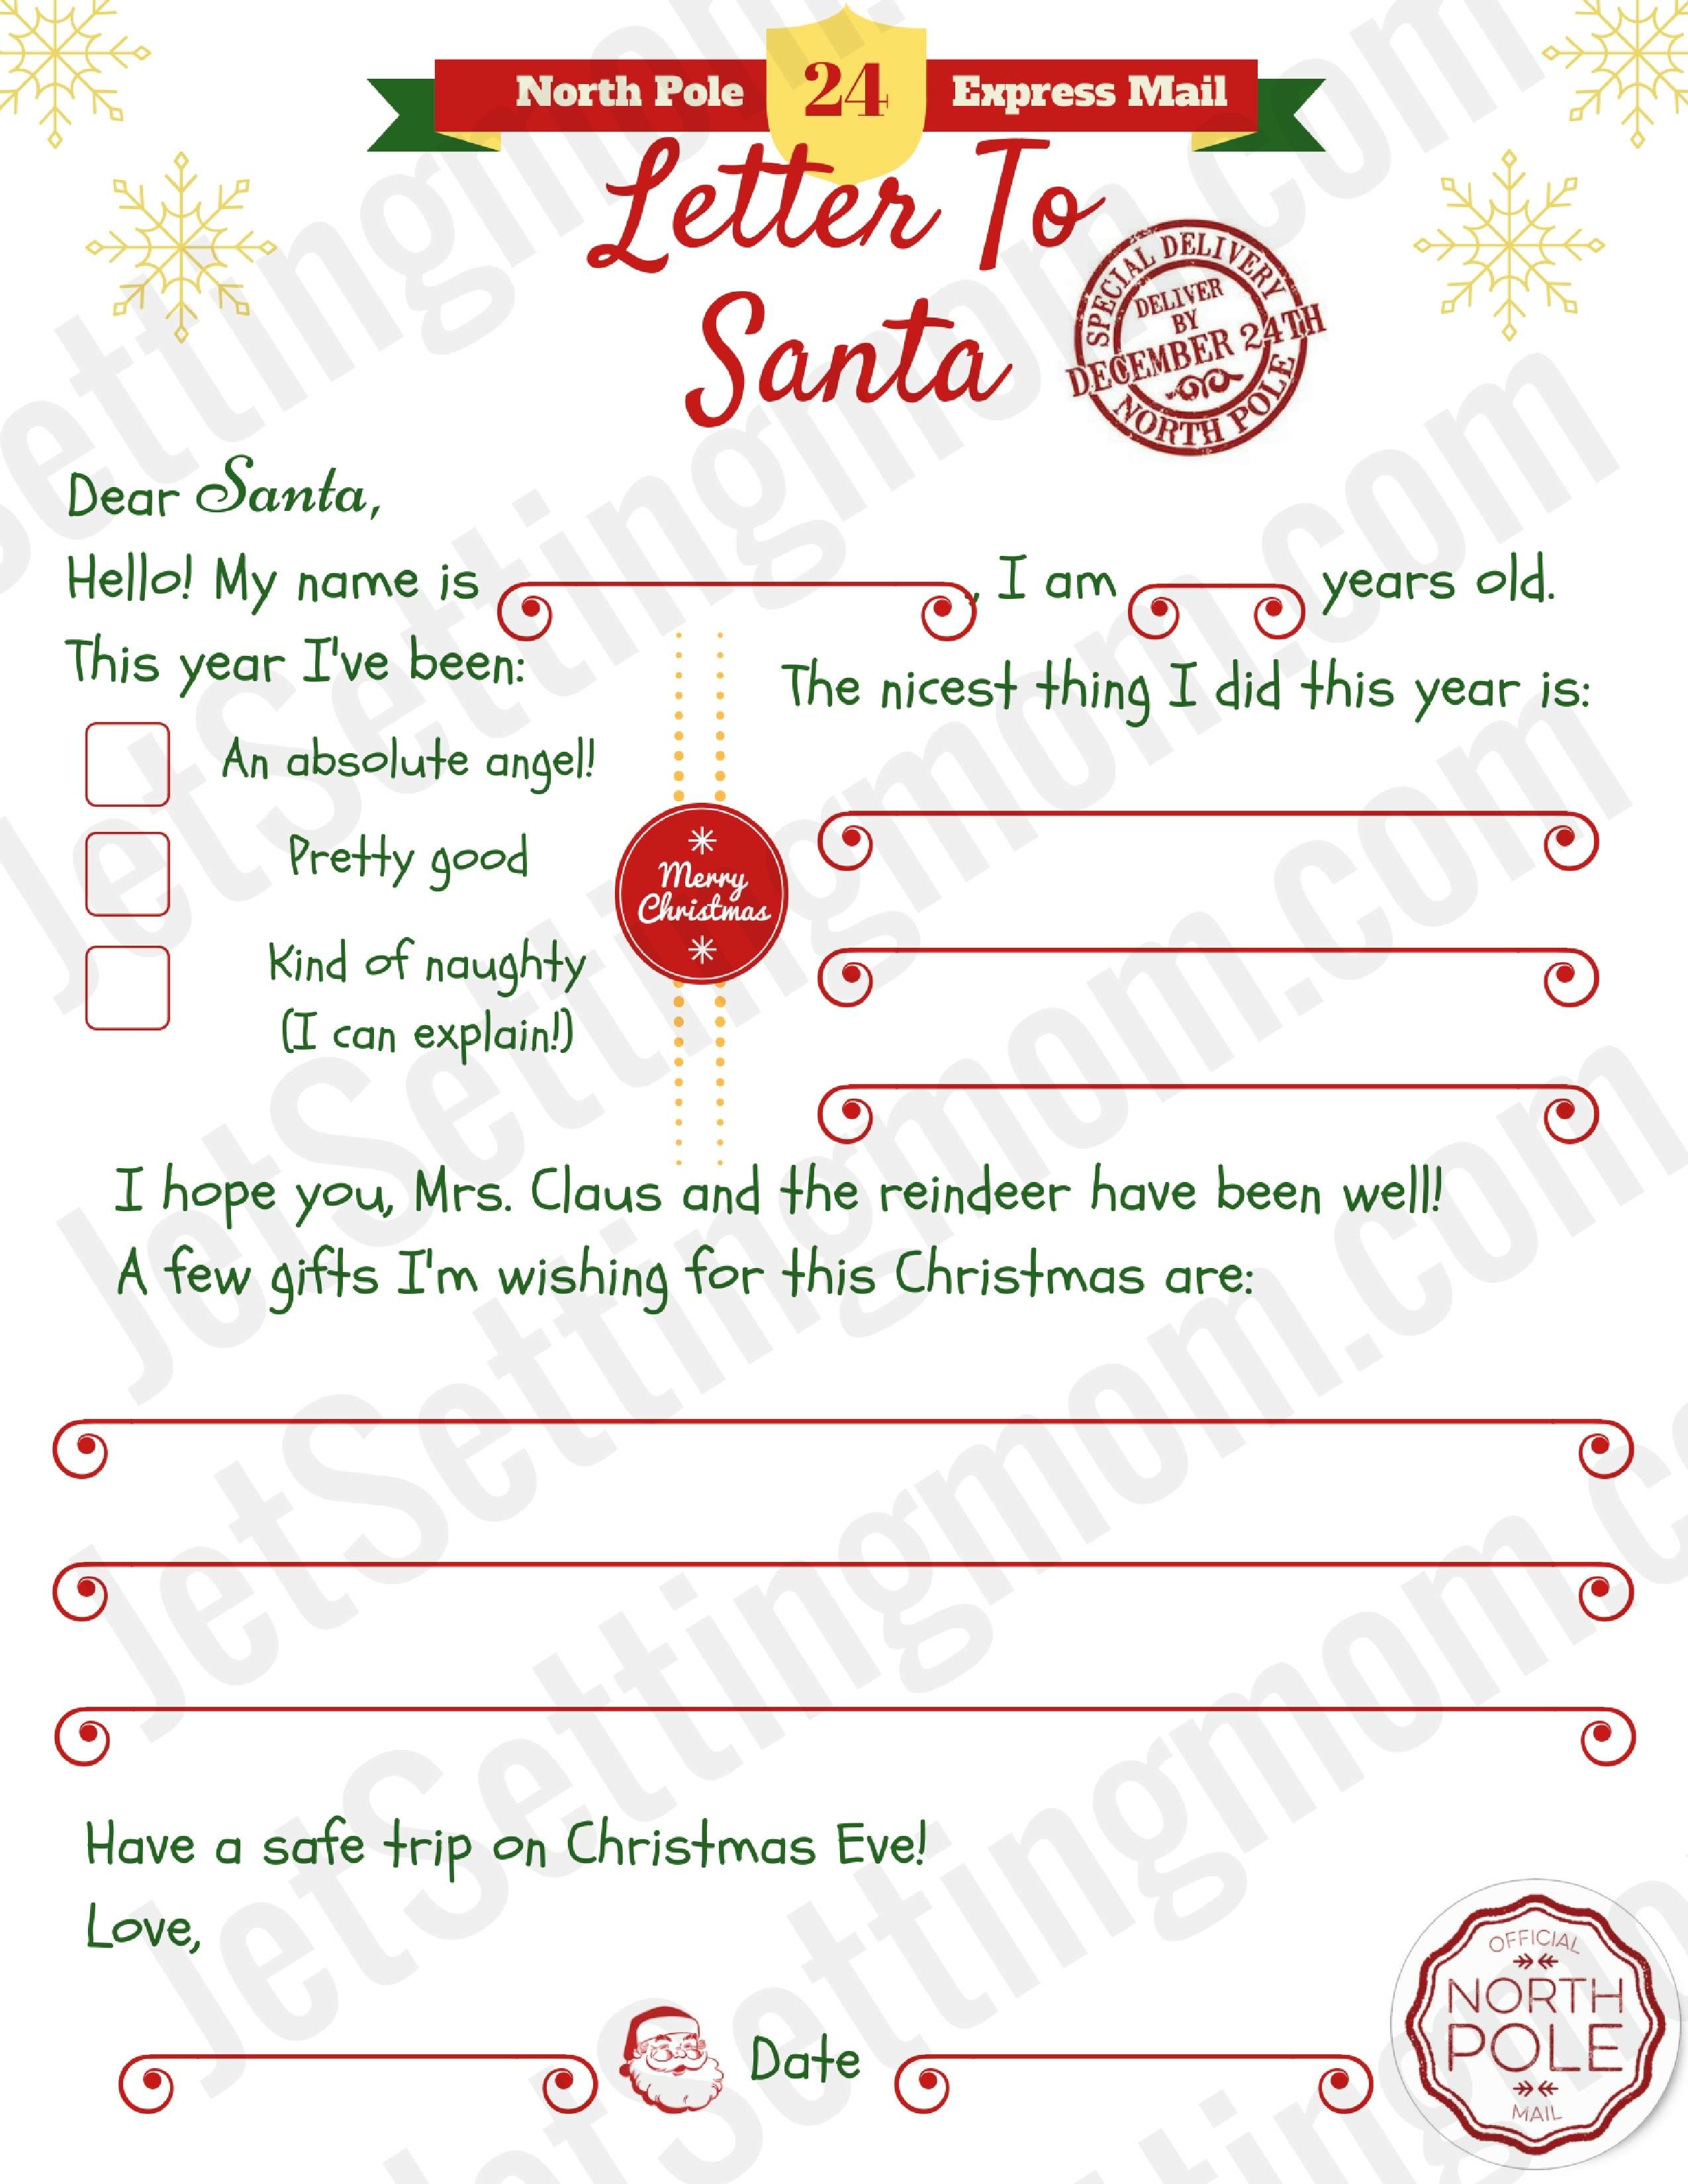 Free Printable Letter To Santa Template - Writing To Santa Made Easy! - Free Printable Christmas Letters From Santa